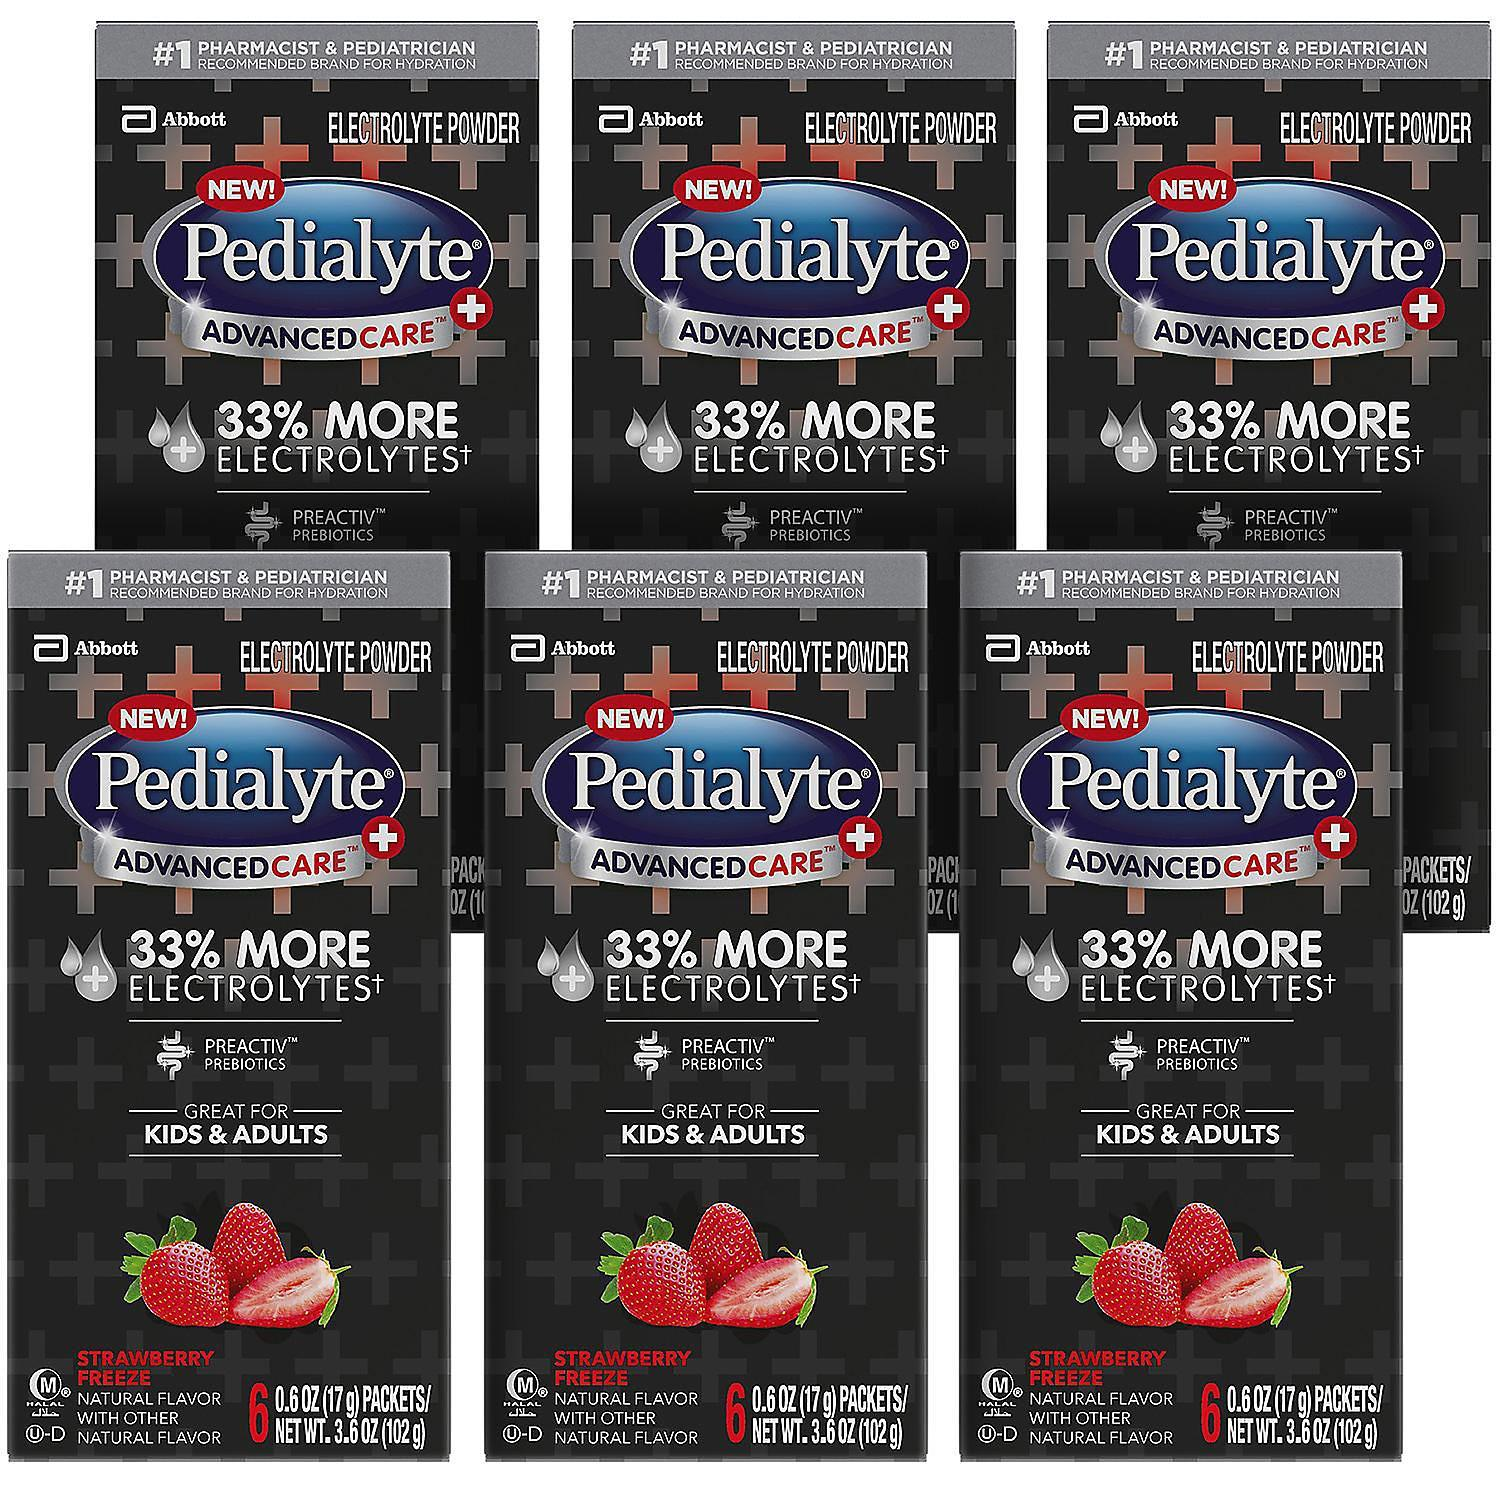 Pedialyte AdvancedCare Plus Electrolyte Powder Packets, 36